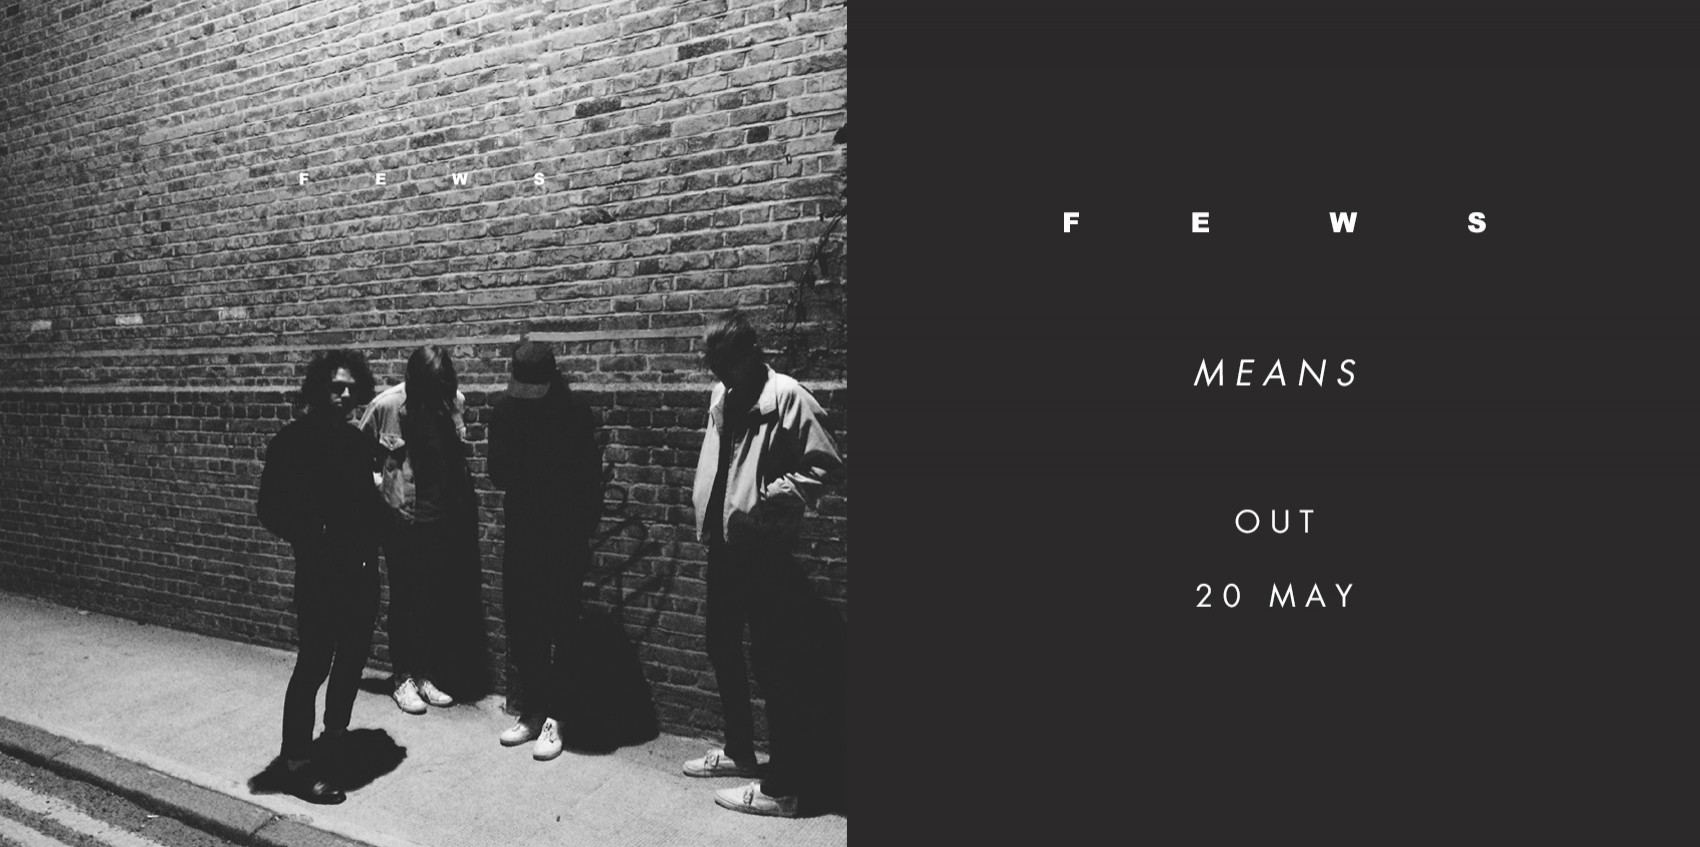 FEWS\' album \'MEANS\' is released on 20th May, 2016 through Play It Again Sam